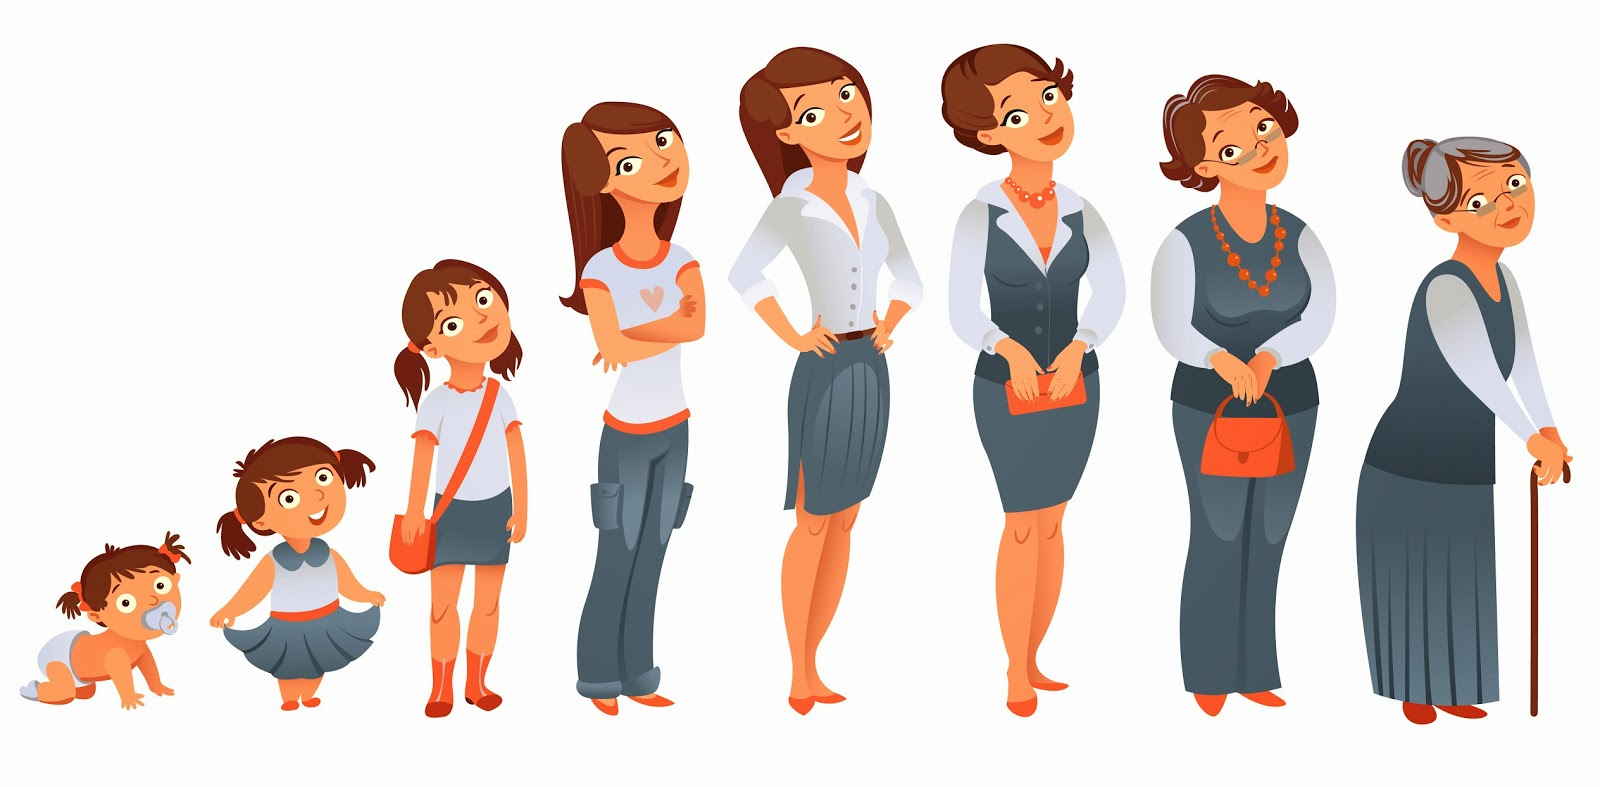 Stages Of Development Clipart